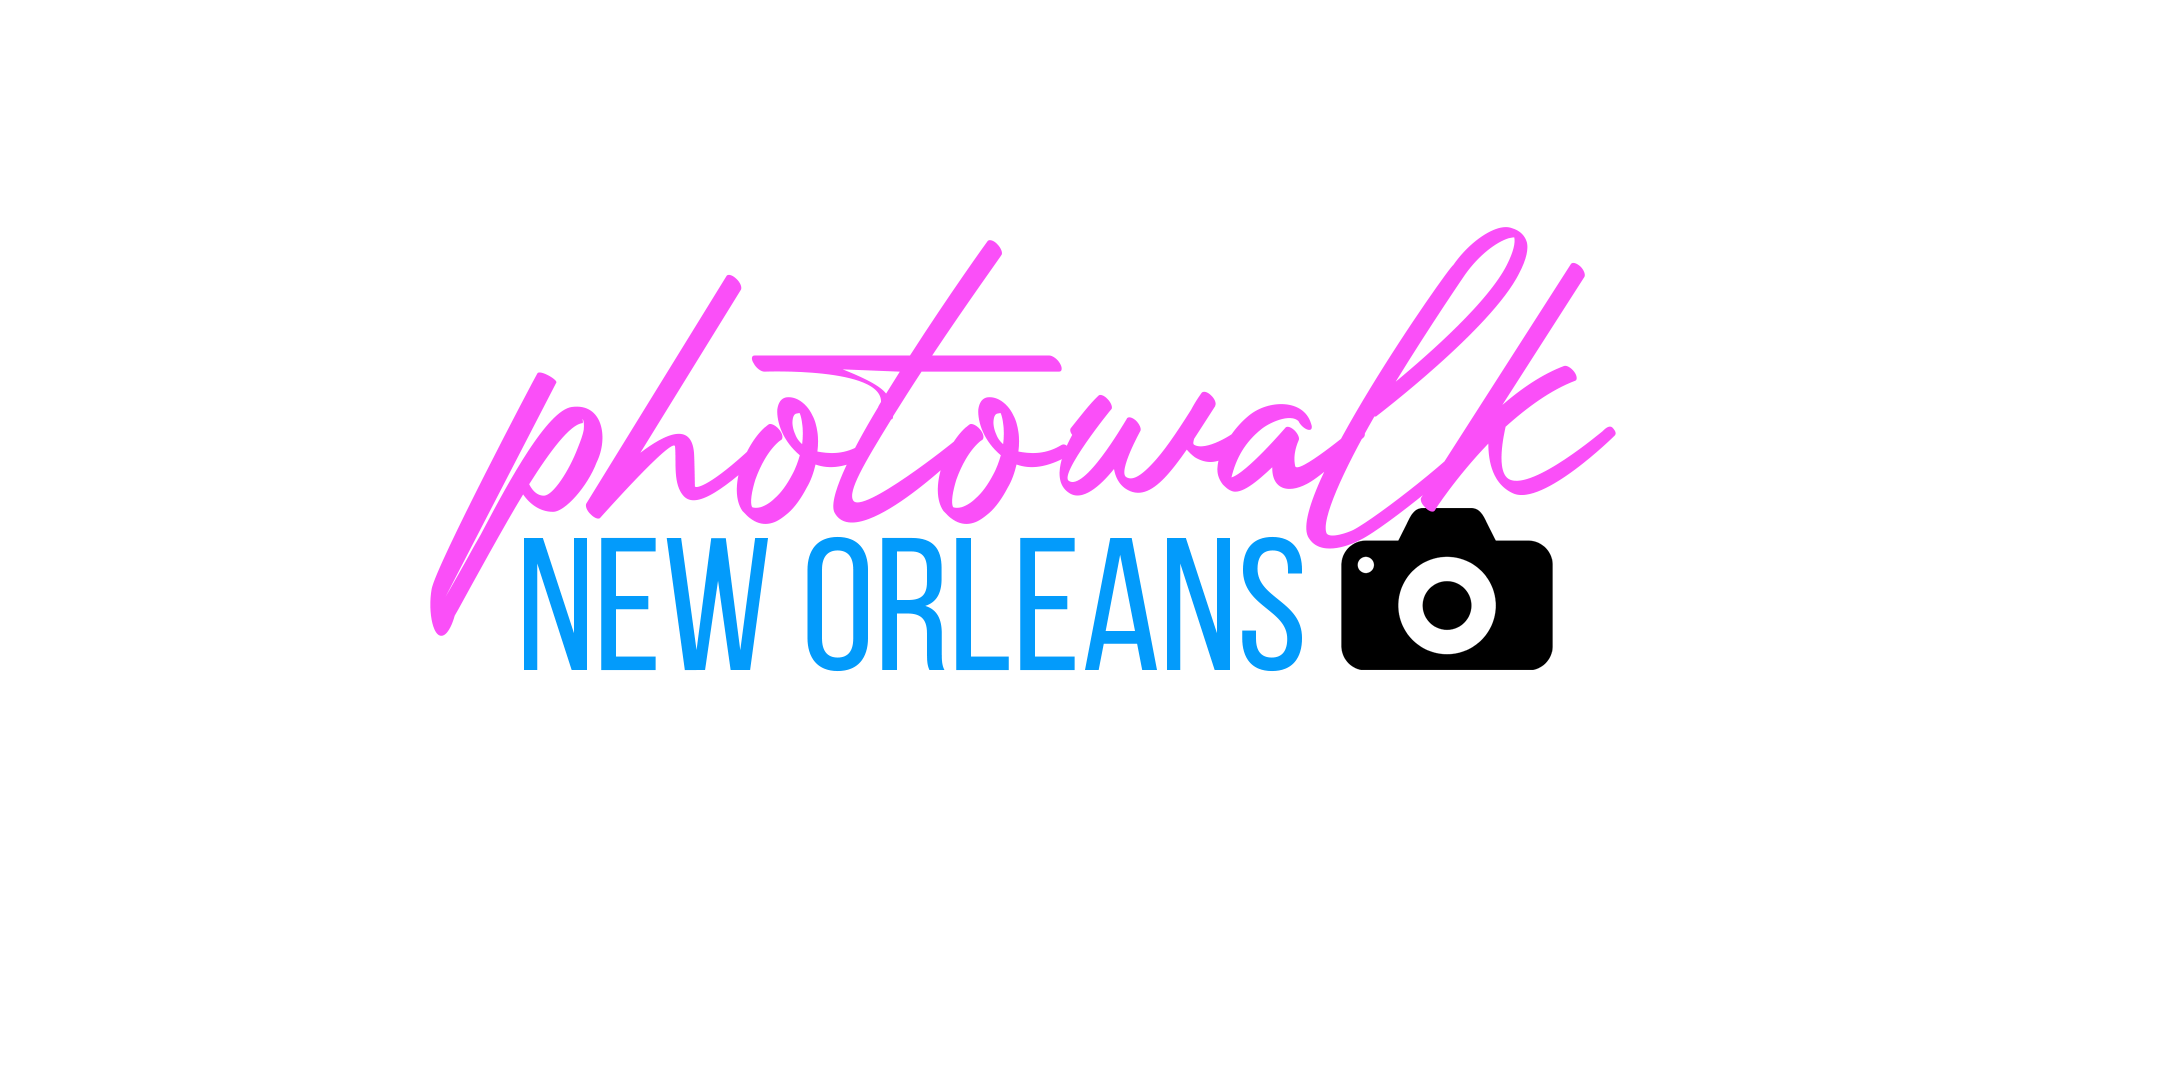 Photowalk New Orleans - Do it for the gram